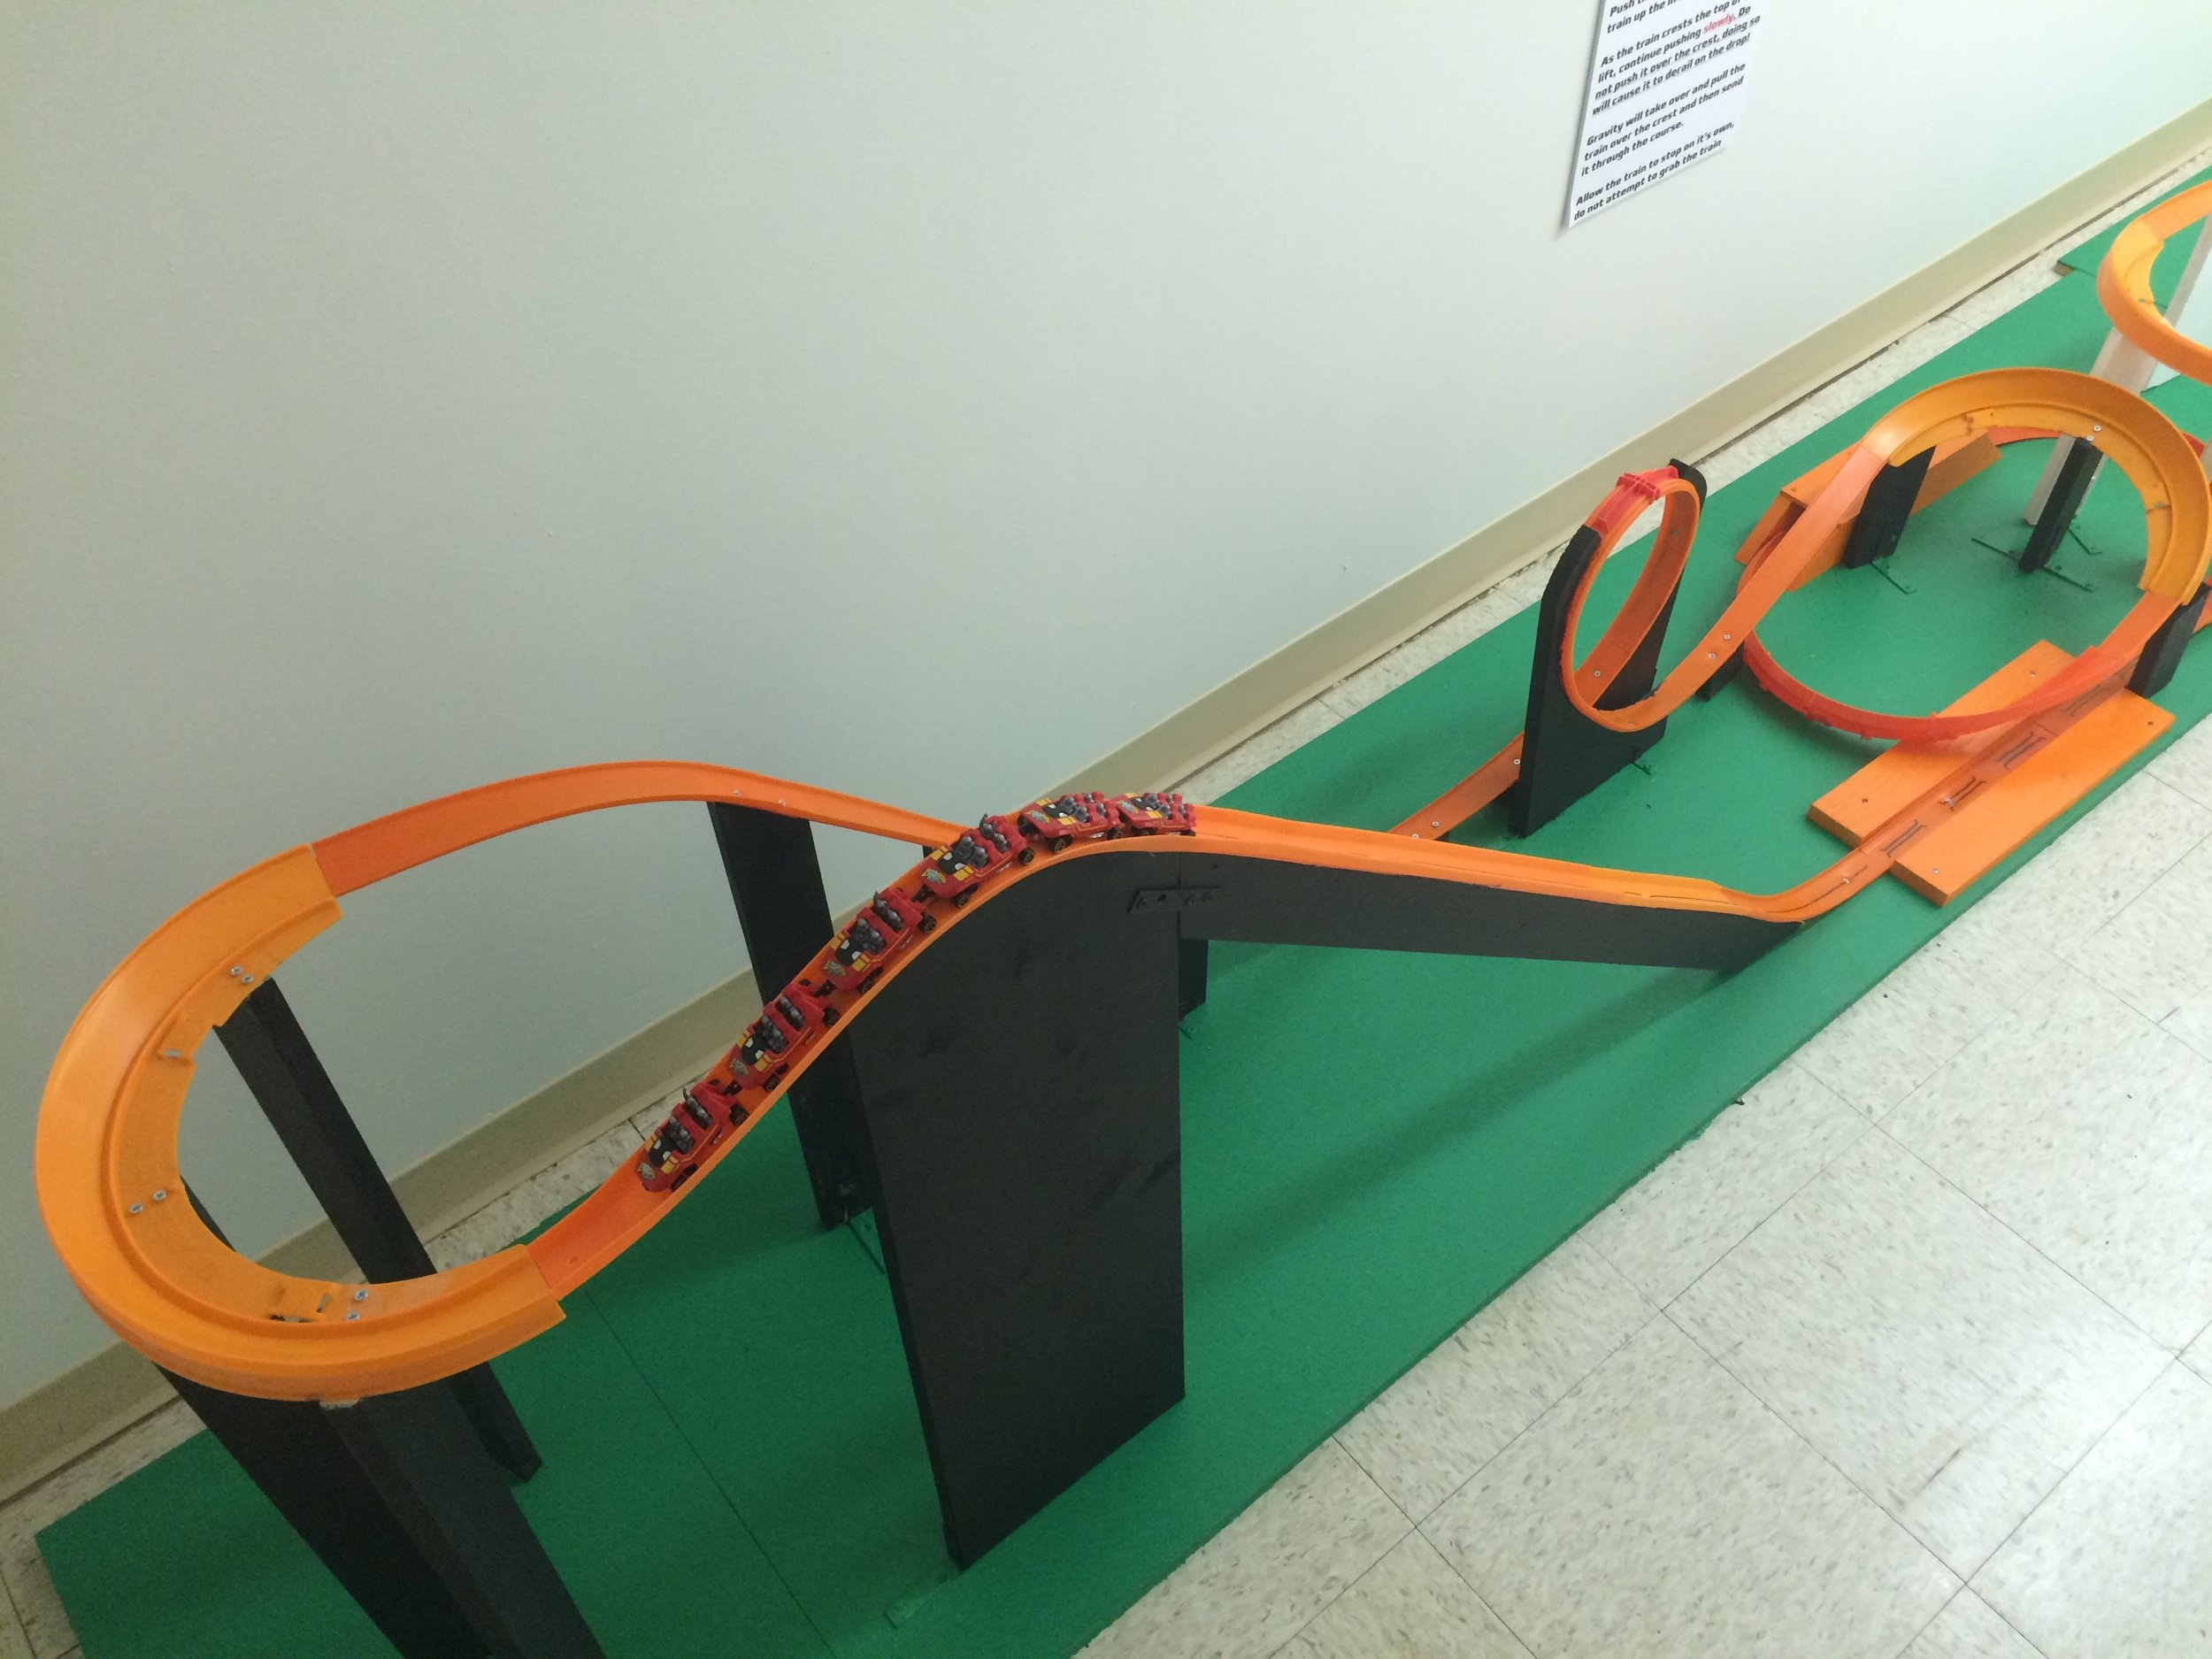 Exhibit: Test Tracks - Loopster